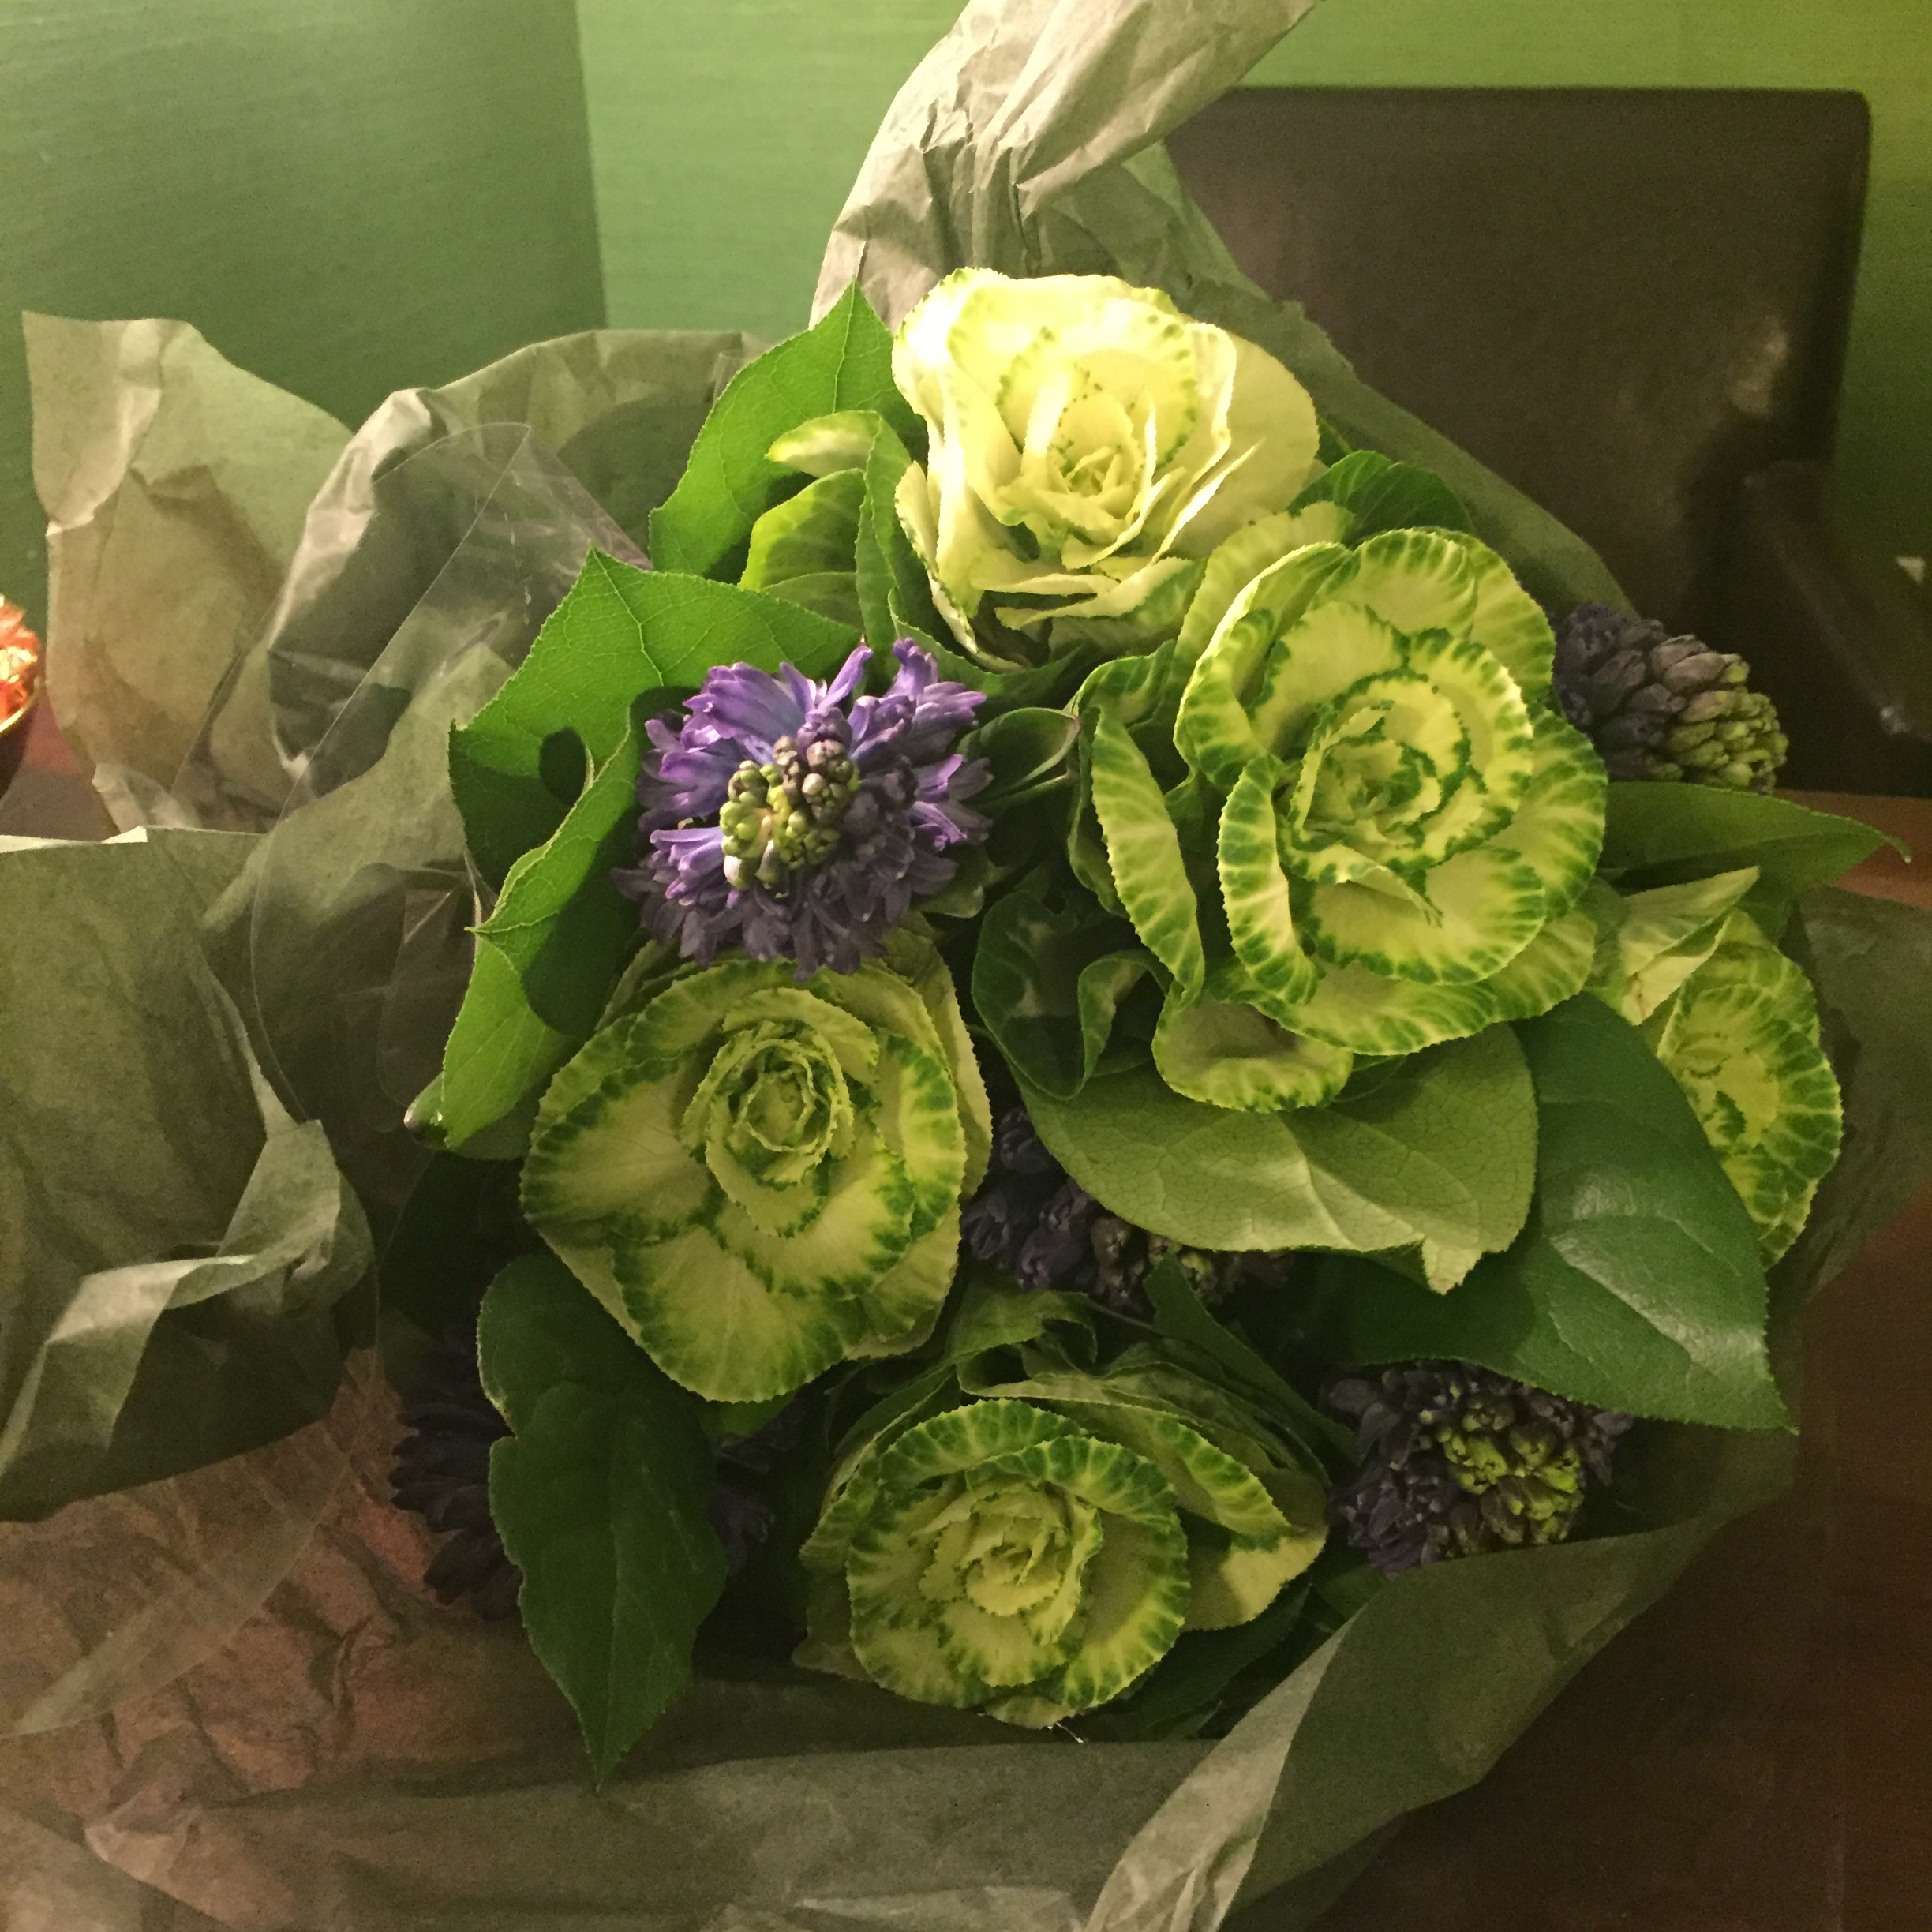 Flowers from an abdominoplasty patient